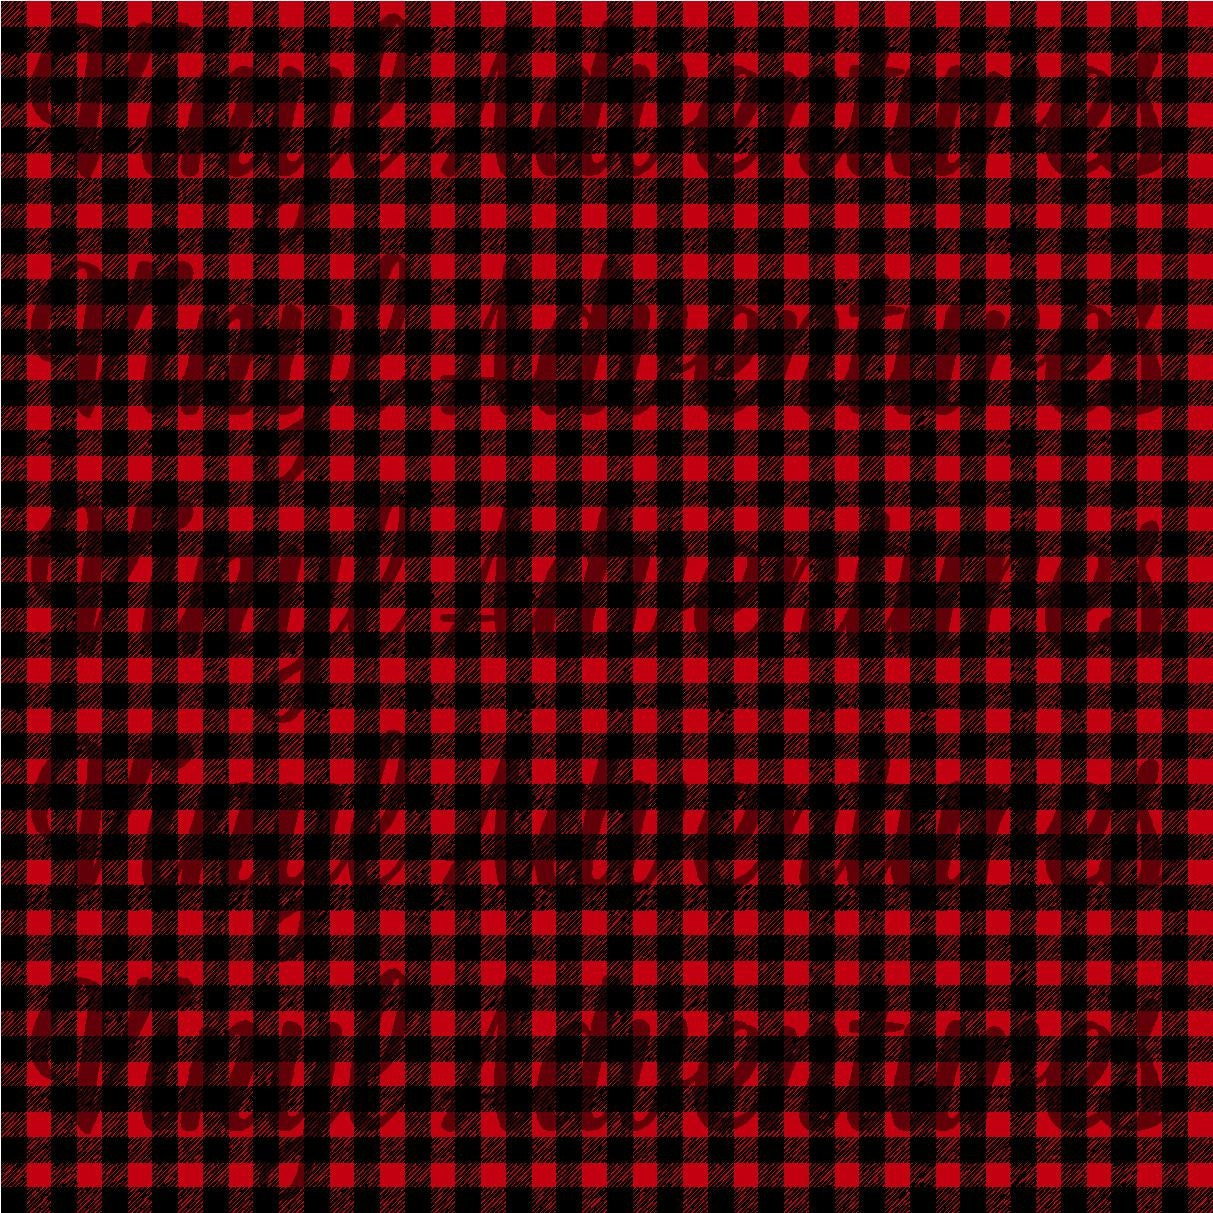 Buffalo Plaid Htv Red Black Buffalo Plaid Pattern Heat